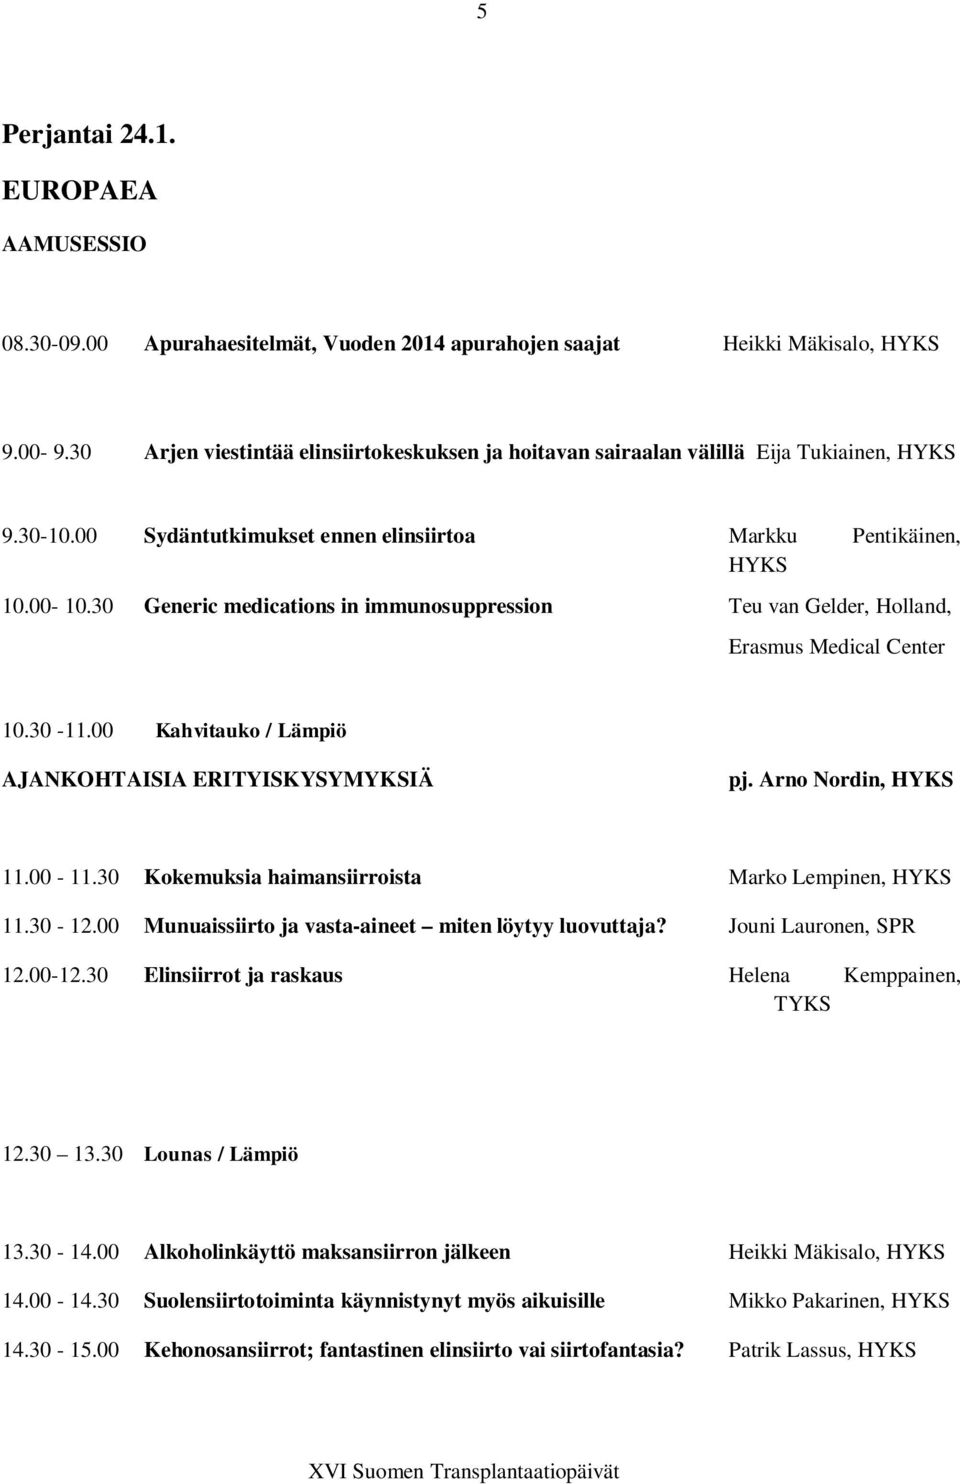 30 Generic medications in immunosuppression Teu van Gelder, Holland, Erasmus Medical Center 10.30-11.00 Kahvitauko / Lämpiö AJANKOHTAISIA ERITYISKYSYMYKSIÄ pj. Arno Nordin, HYKS 11.00-11.